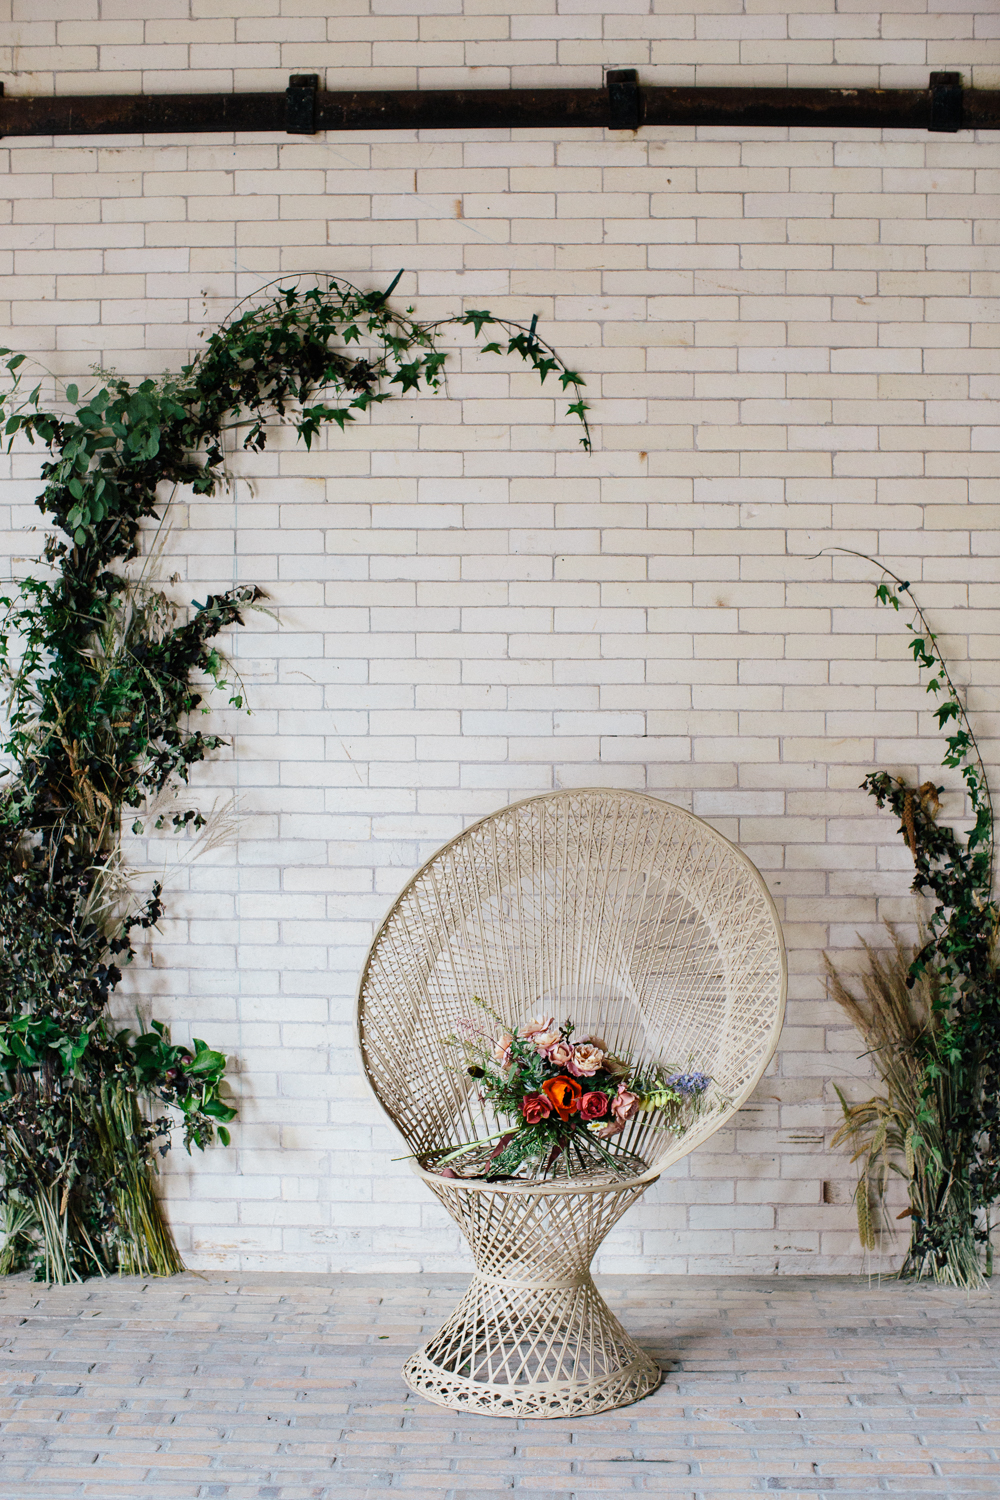 Ceremony flower arrangements by Nectar & Root | Wedding floral design services in Burlington, Vermont (VT) | Flower wall installation with ivy, grasses, eucalyptus